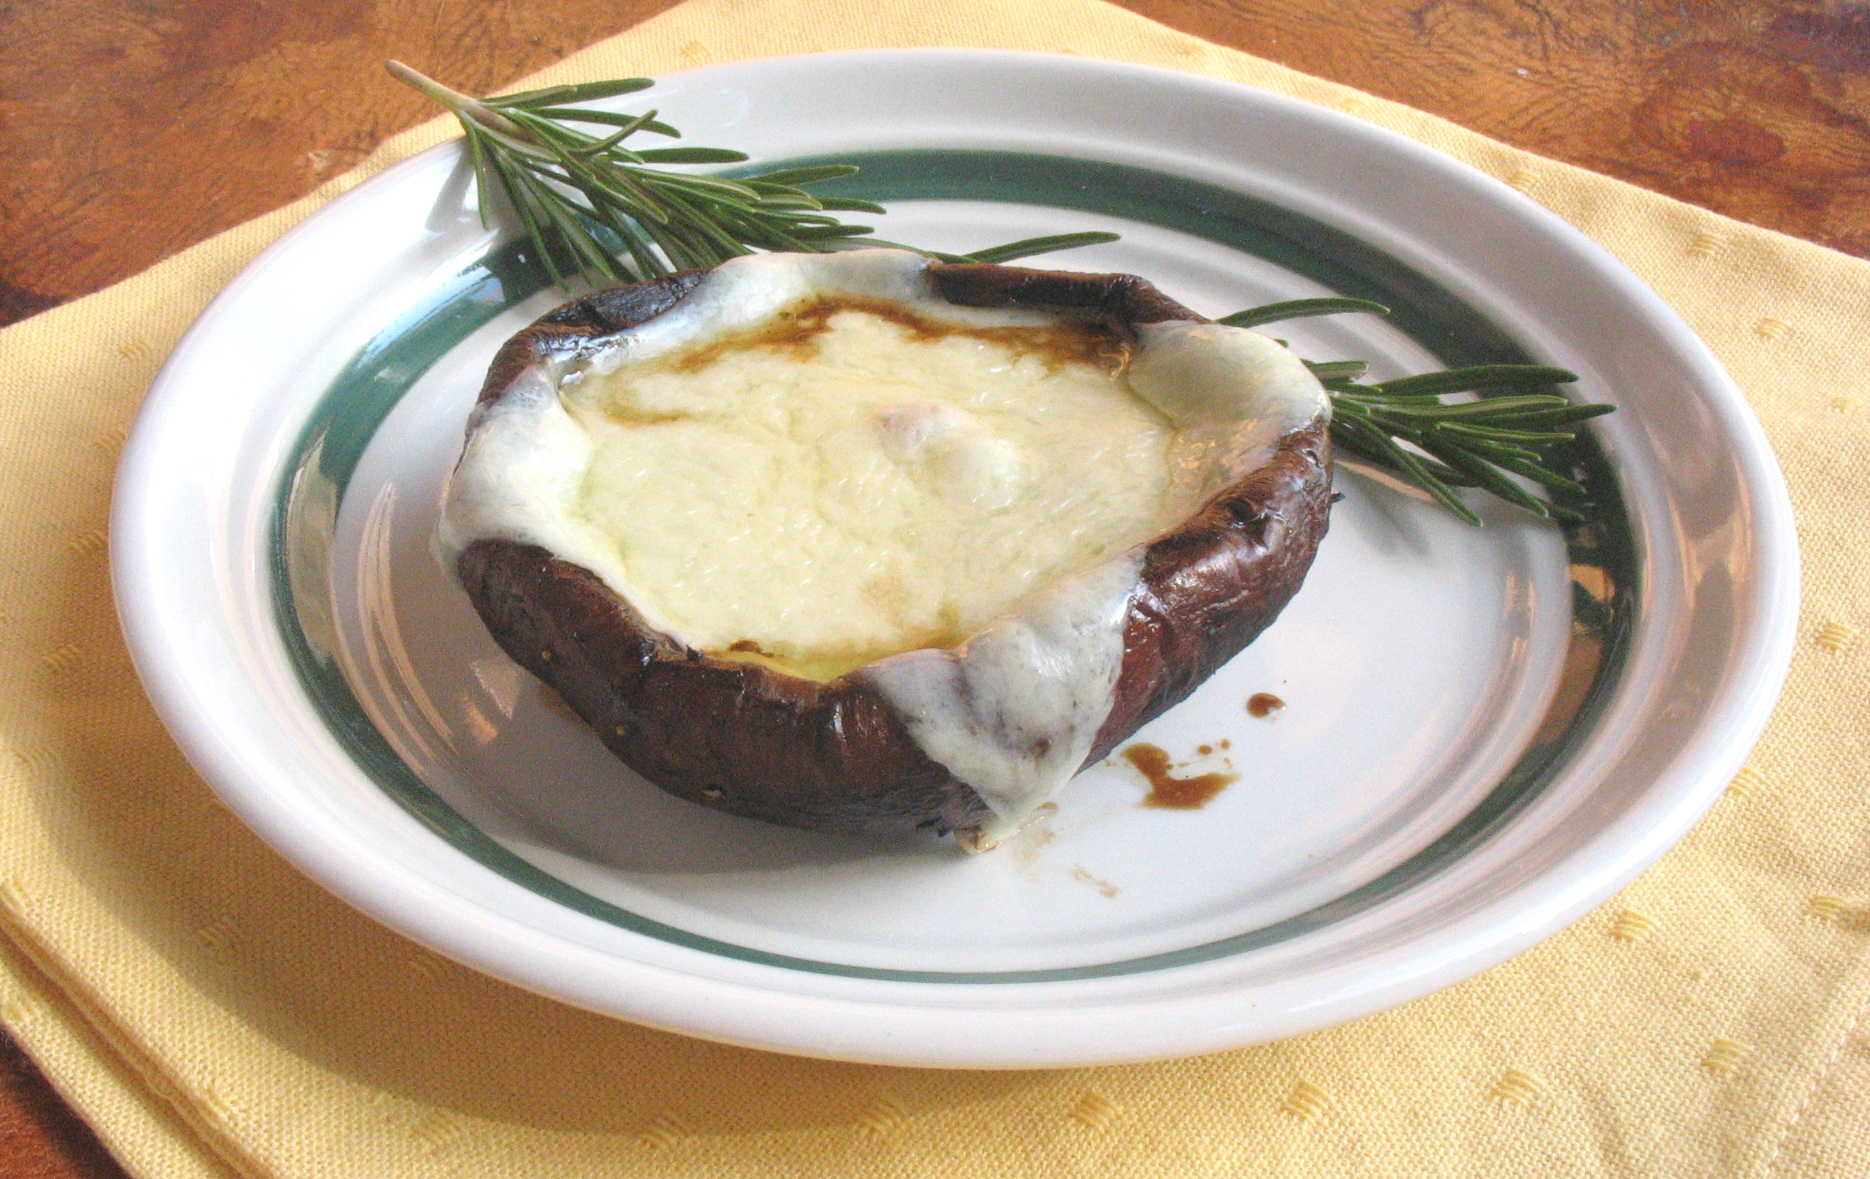 Grilled Portobello Mushrooms with Fontina Melt